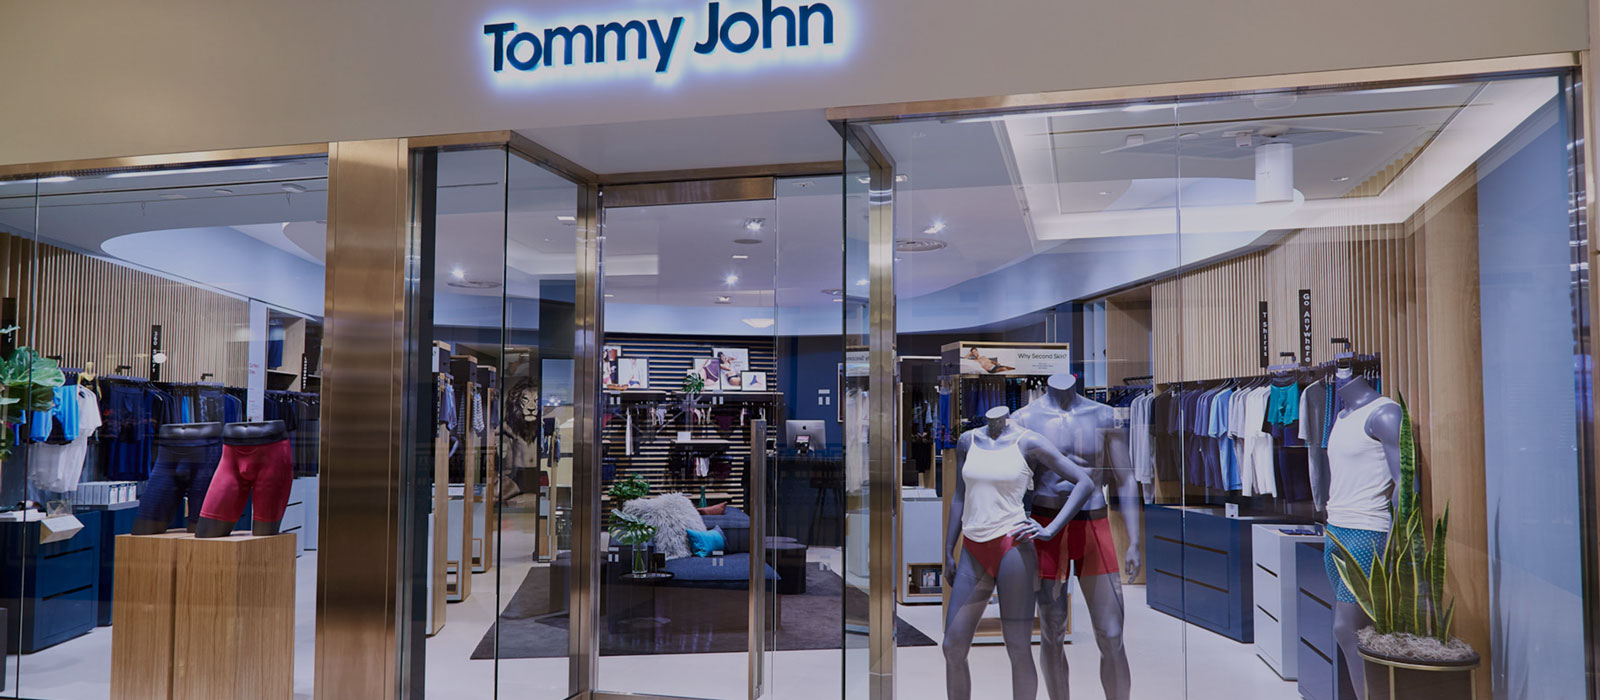 Tommy John Retail Store Image